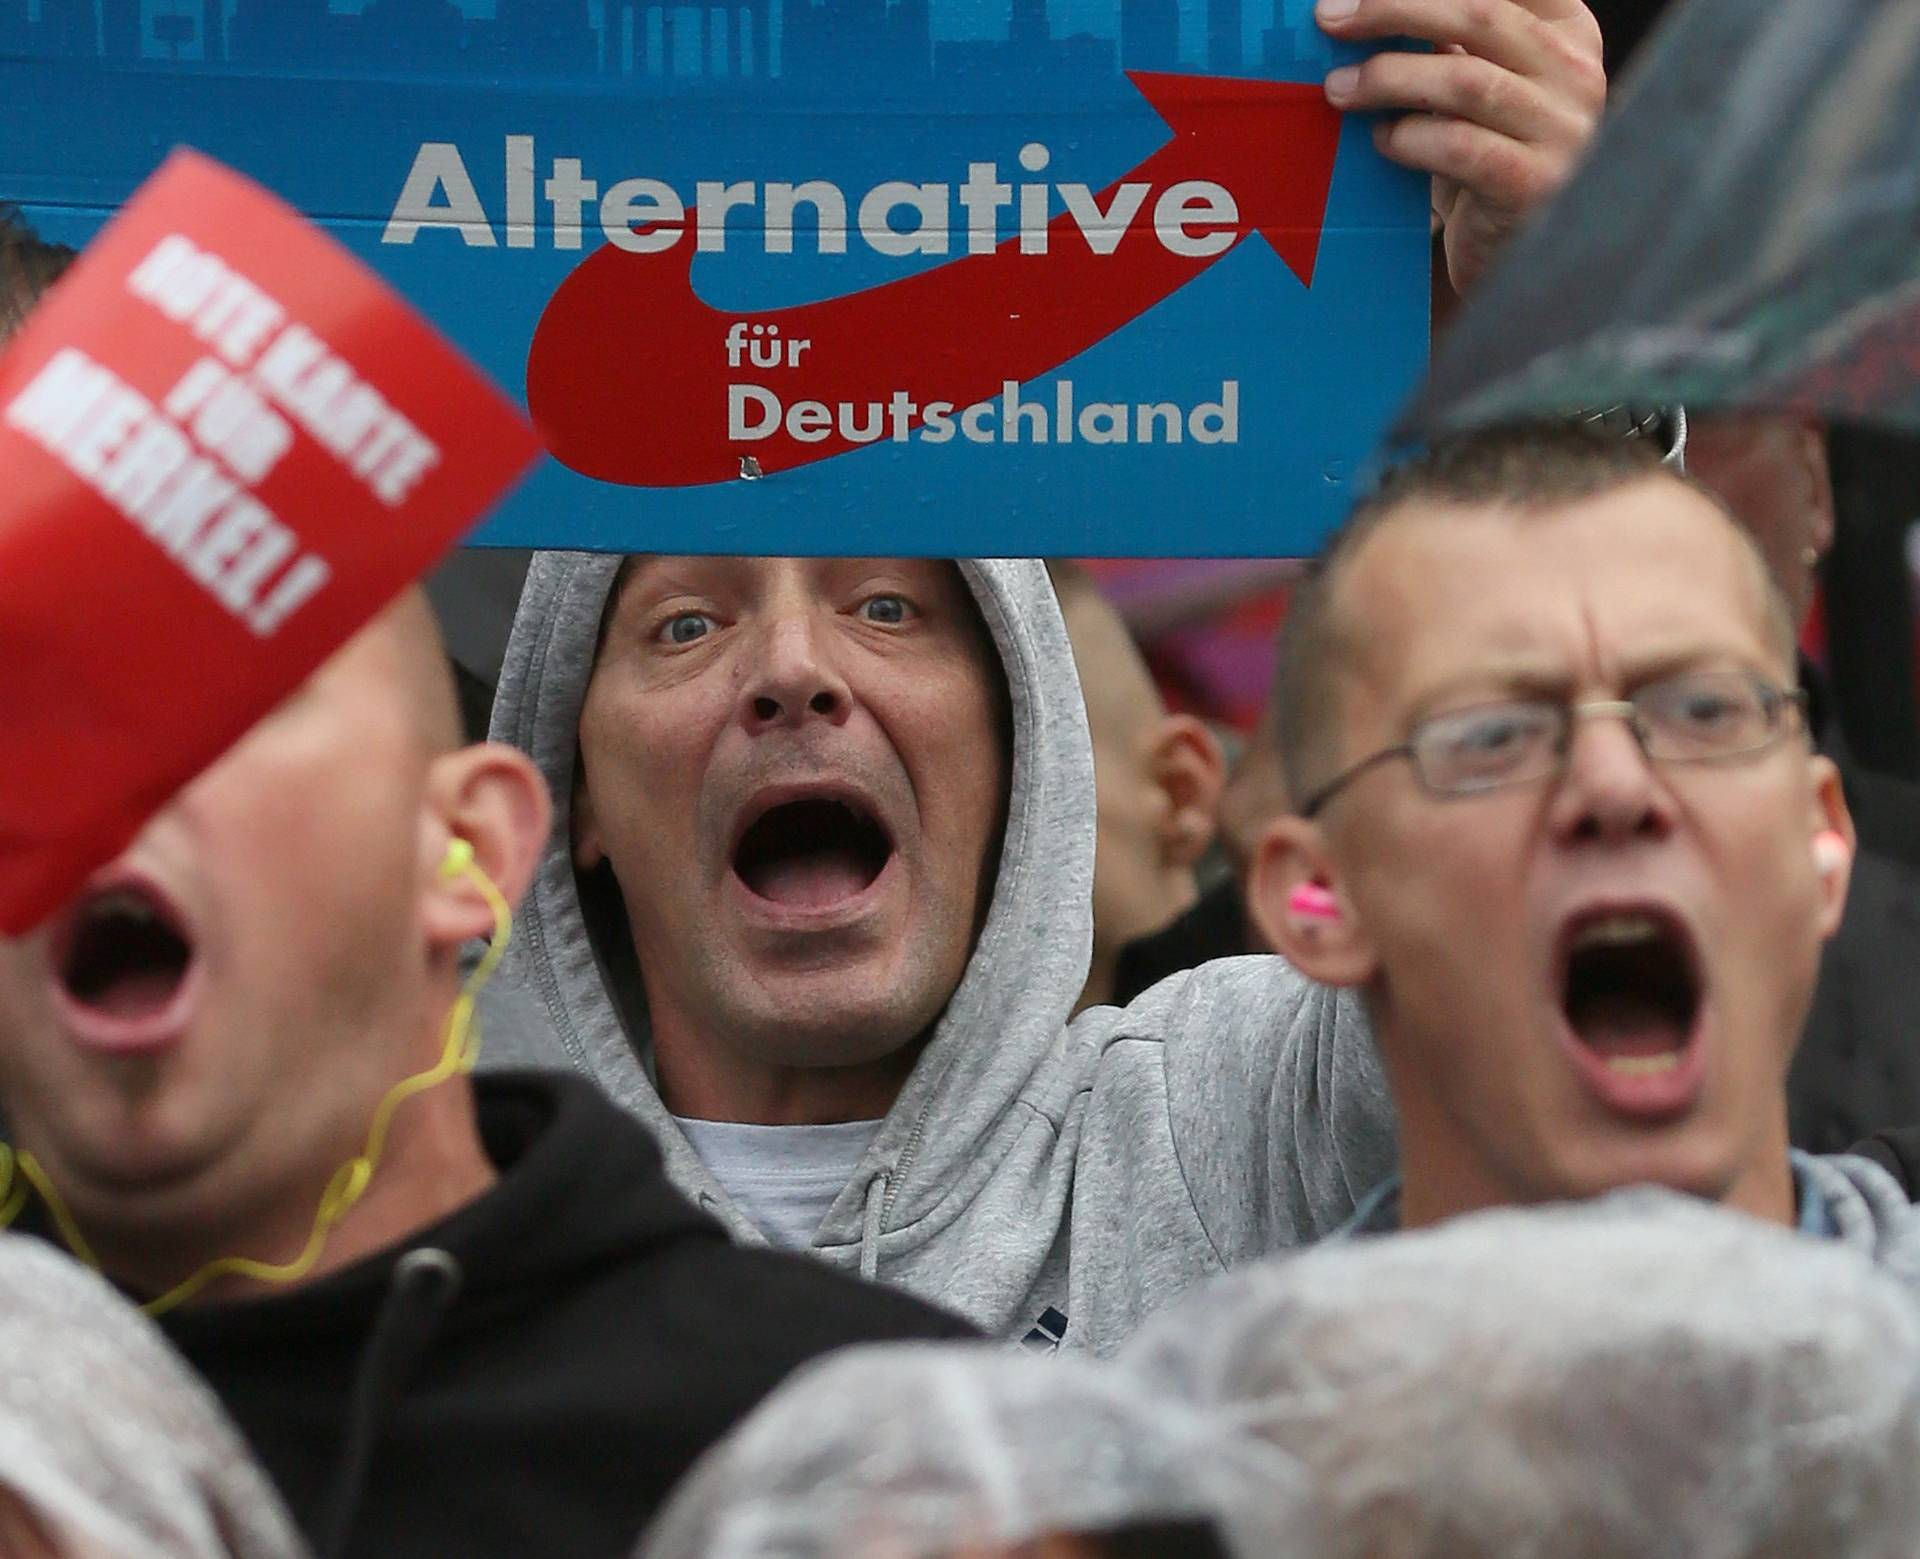 Supporters of the hard-right Alternative for Germany (AfD) party shout slogans durig an election campaign rally of German Chancellor Angela Merkel in Torgau